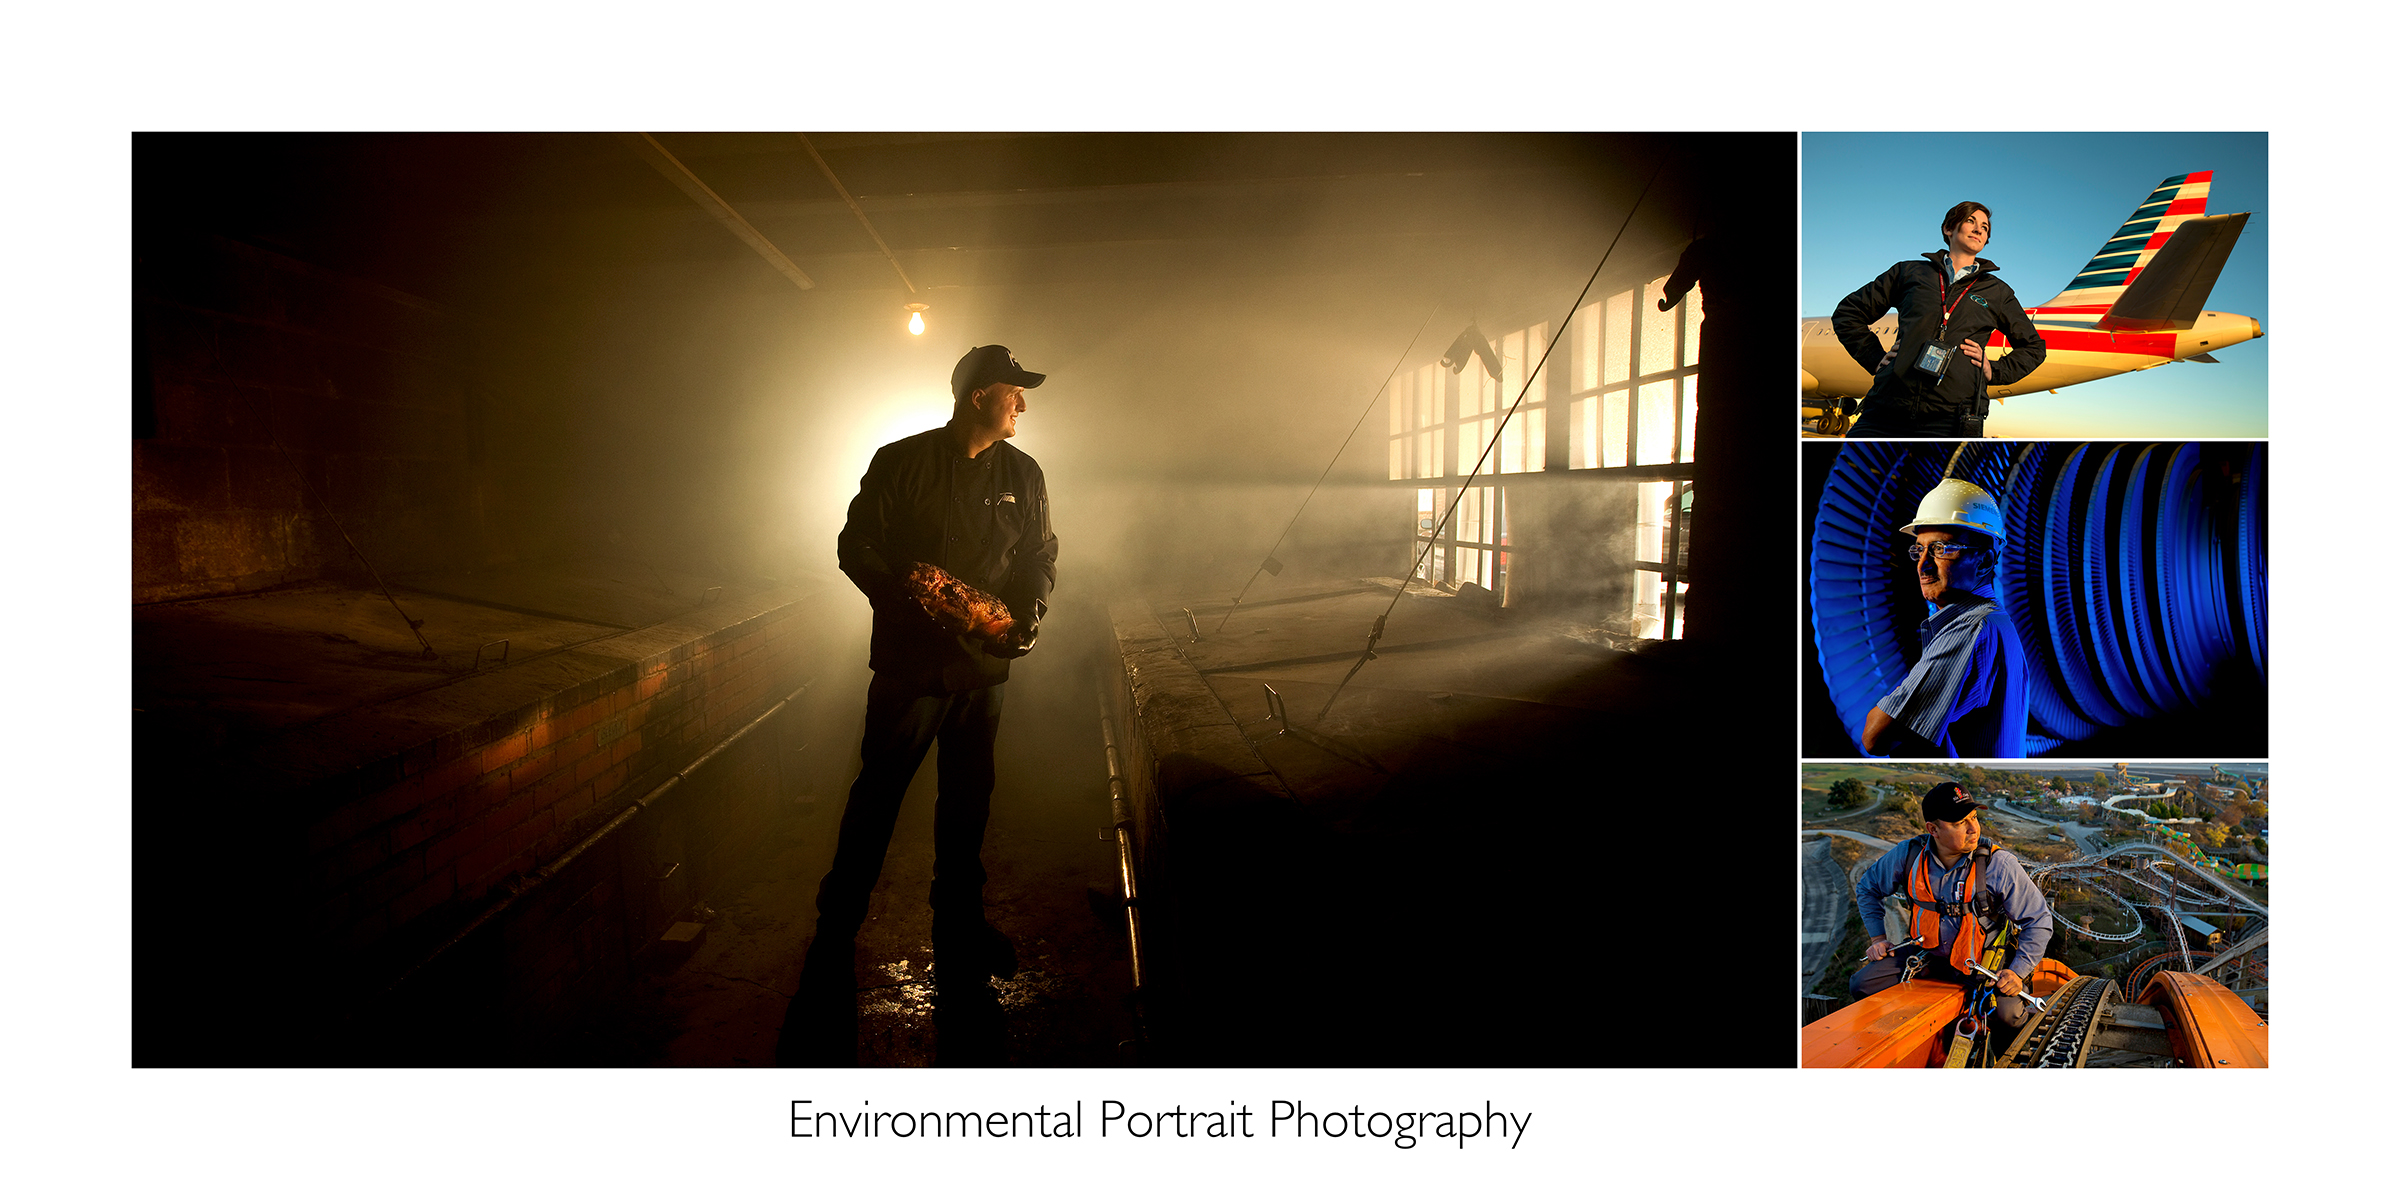 Environmental Portrait Photography